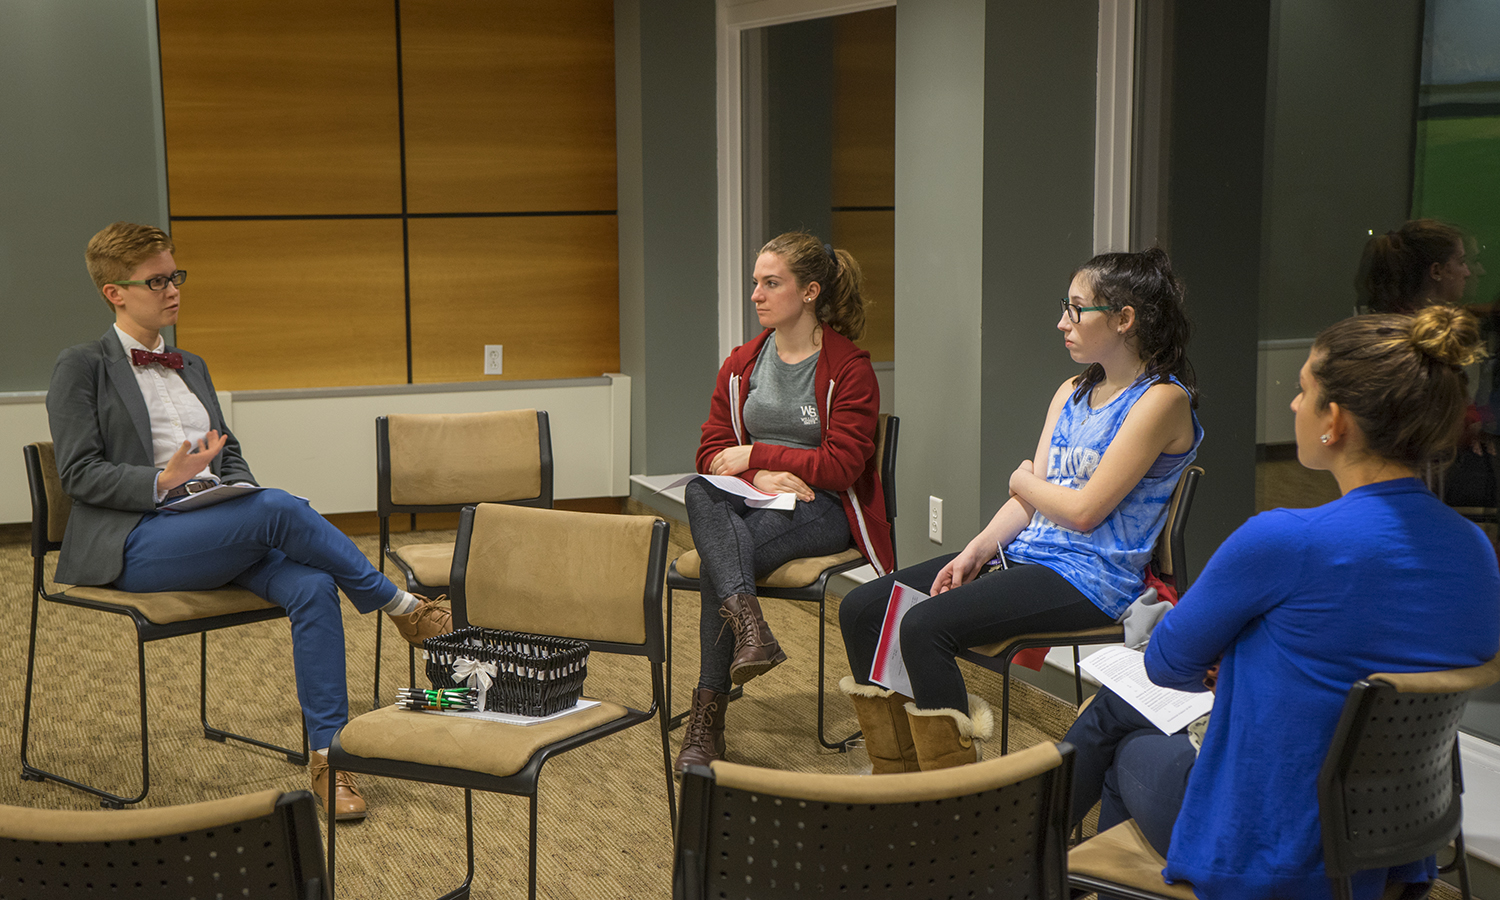 Prevention and Education Coordinator for the Office of Title IX Programs and Compliance Katie Stifler speaks with students during a session on healthy relationships as part of the Red Flag Campaign and Dating Violence Awareness Month.